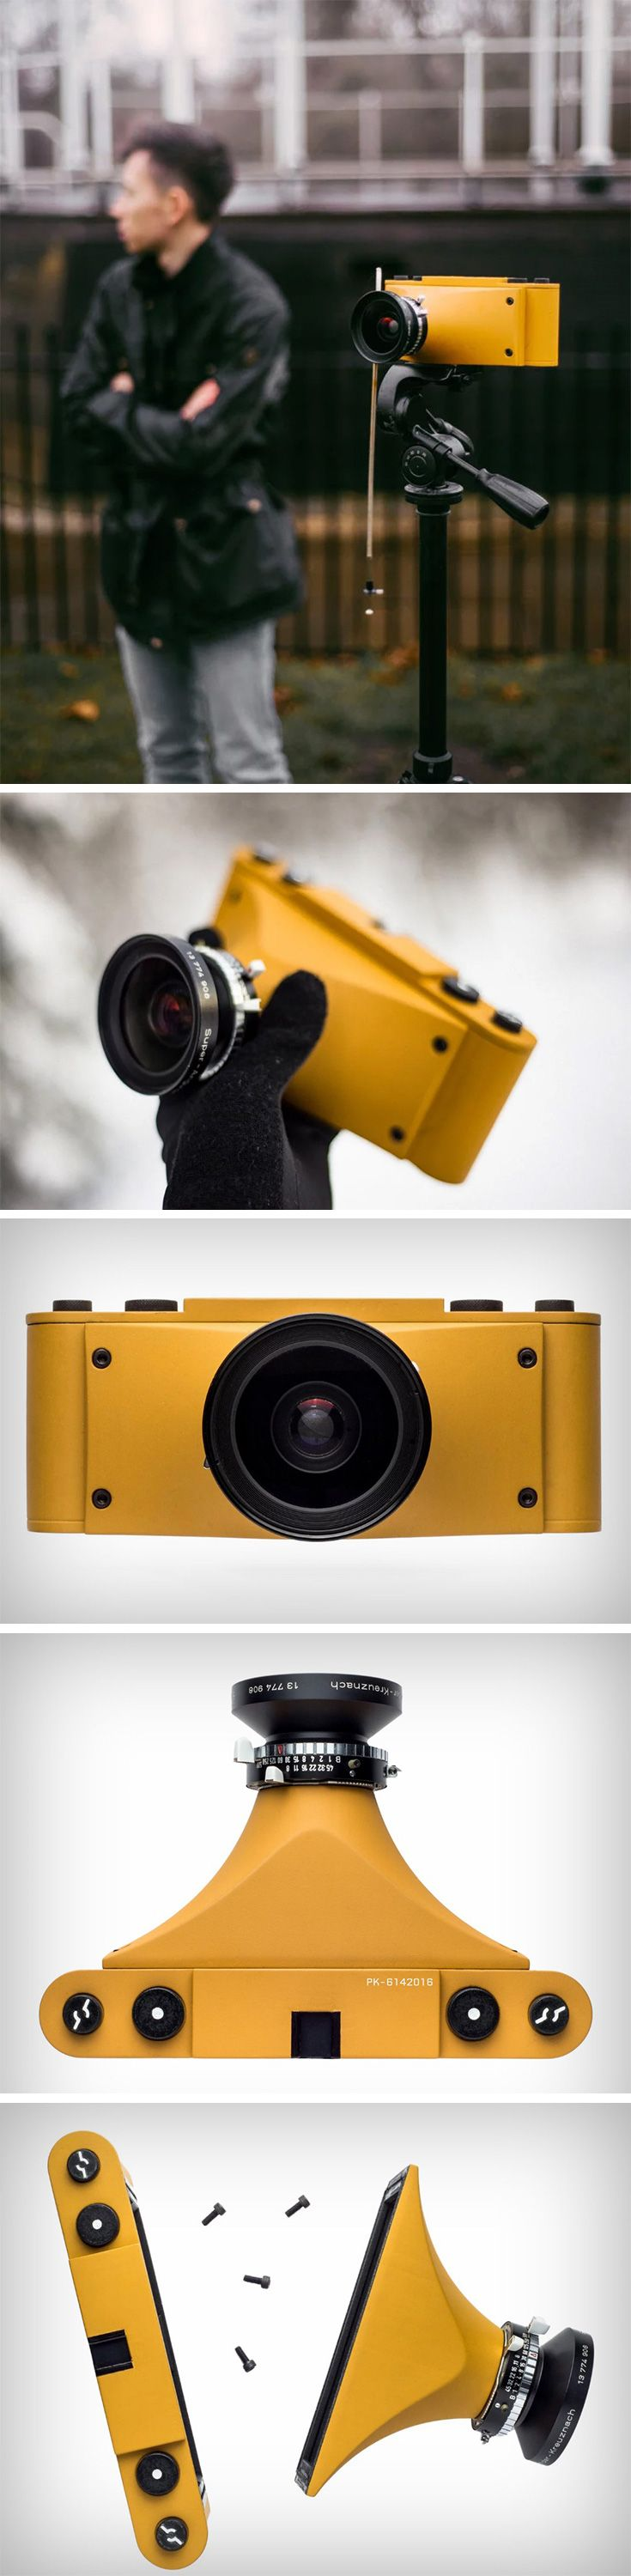 Design student Paul Kohlhaussen built the Cycloptic Mustard Monster, a camera that combined bits from other cameras, mostly obsolete and discontinued models. The Cycloptic Mustard Monster is a beautiful example of necessity being the mother of invention. Paul took the best features from a selection of high-end cameras and combined them into one fully functioning camera at literally a fraction of the cost.